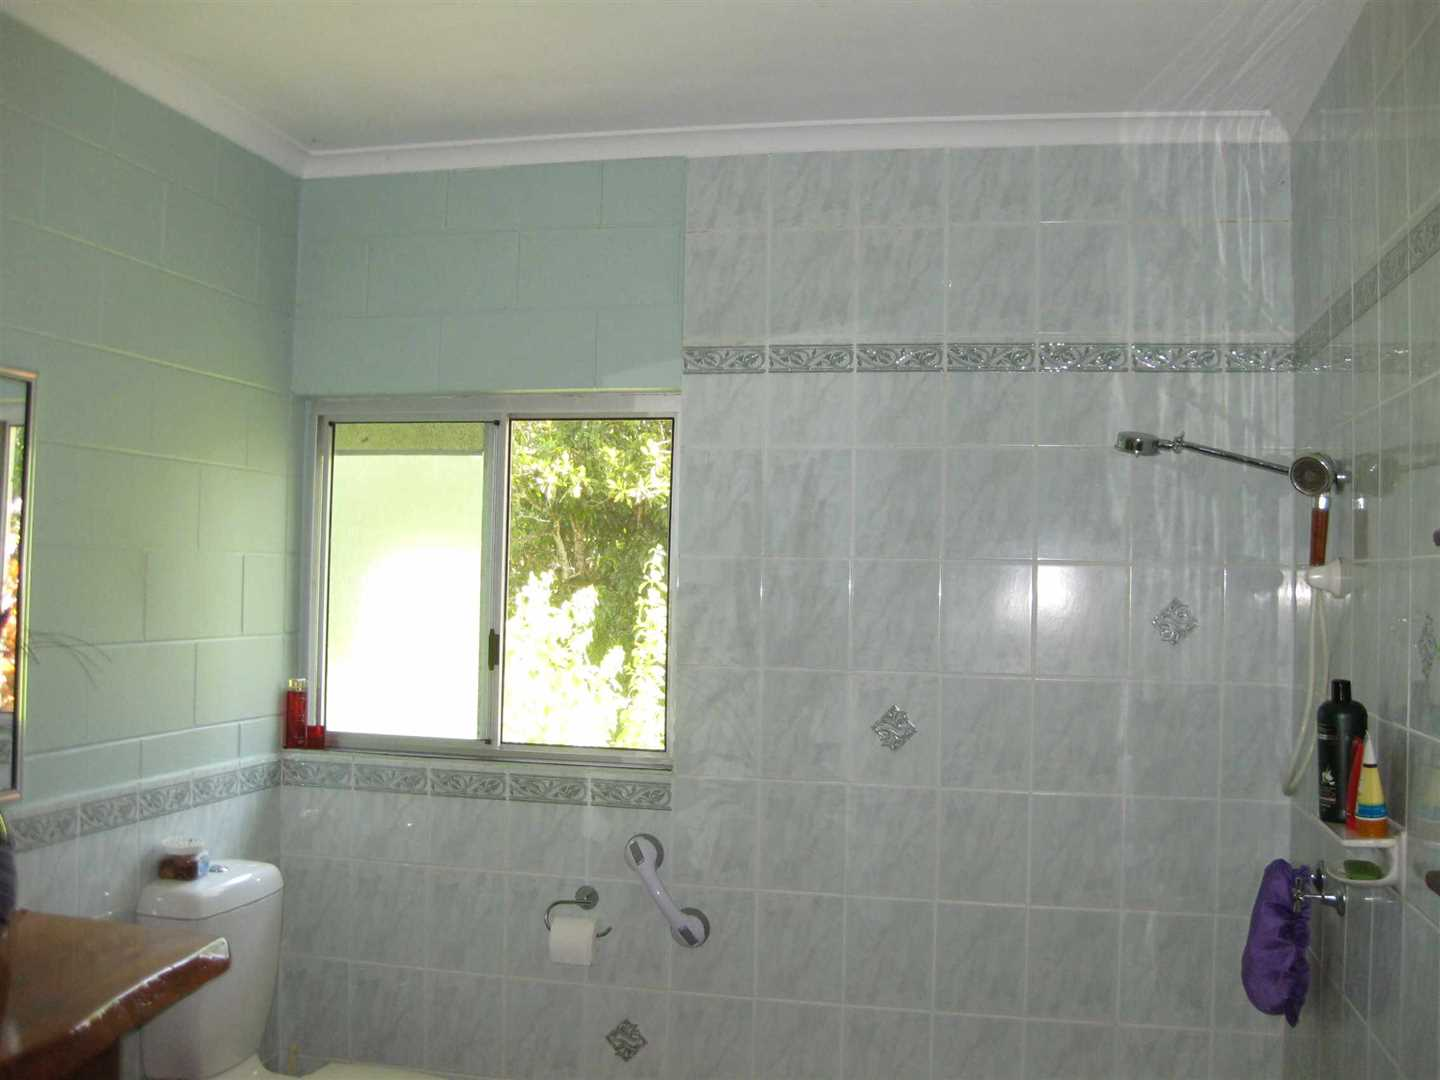 Inside view of part of home showing part of the bathroom, photo 1